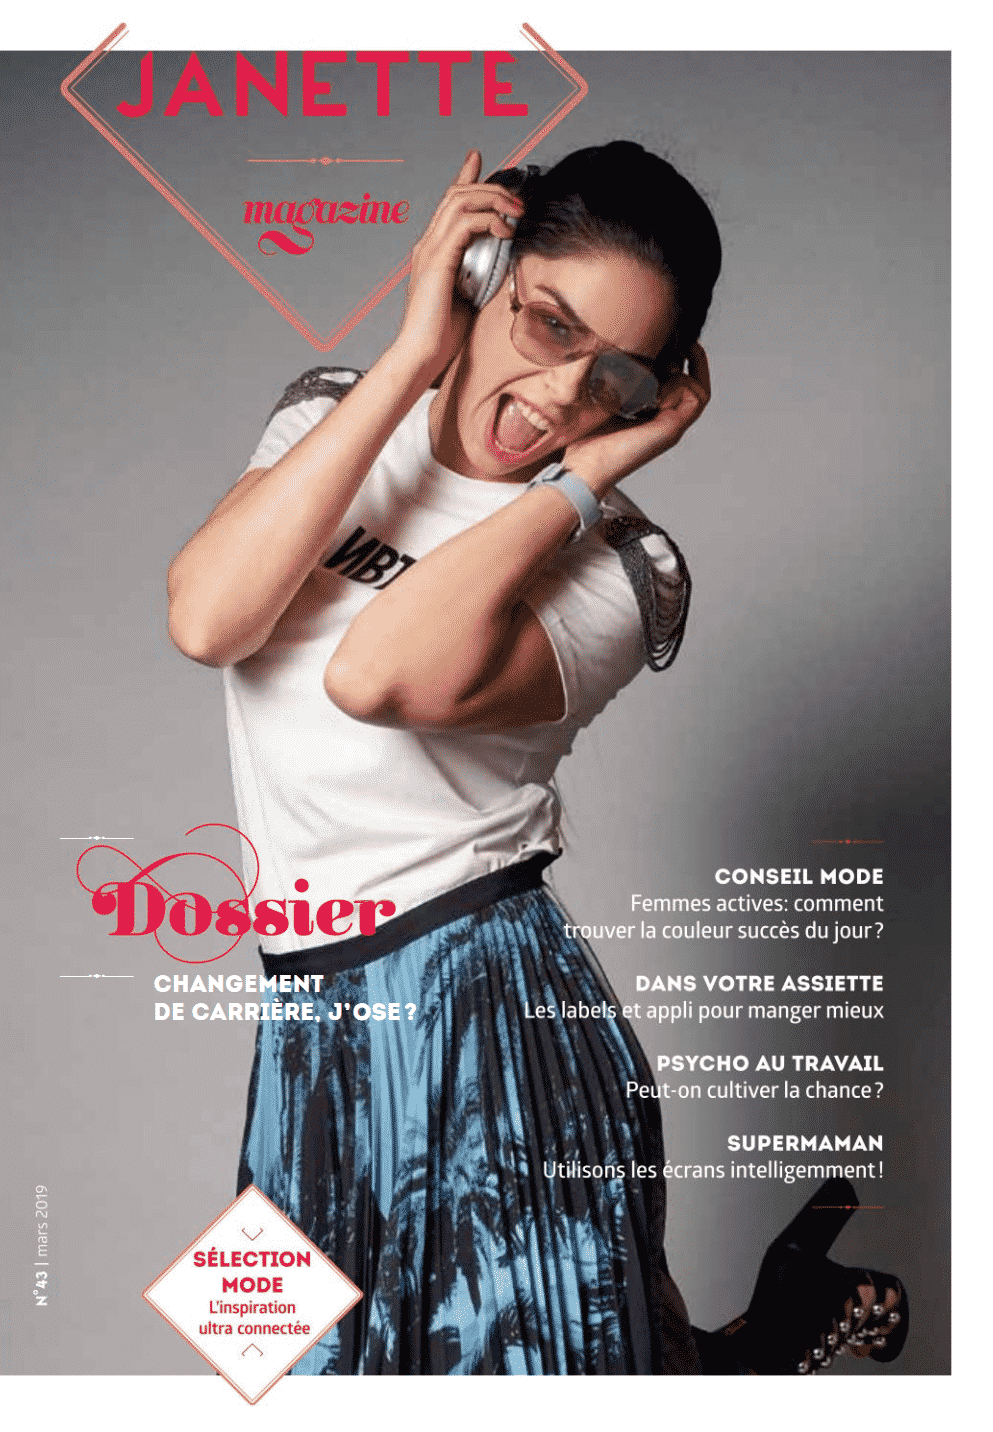 STYLISME PHOTO FEV 2019 Magazine Janette Luxembourg Adelaide Dubucq styliste photo cover et reportage mode Inspiration ultra connectée